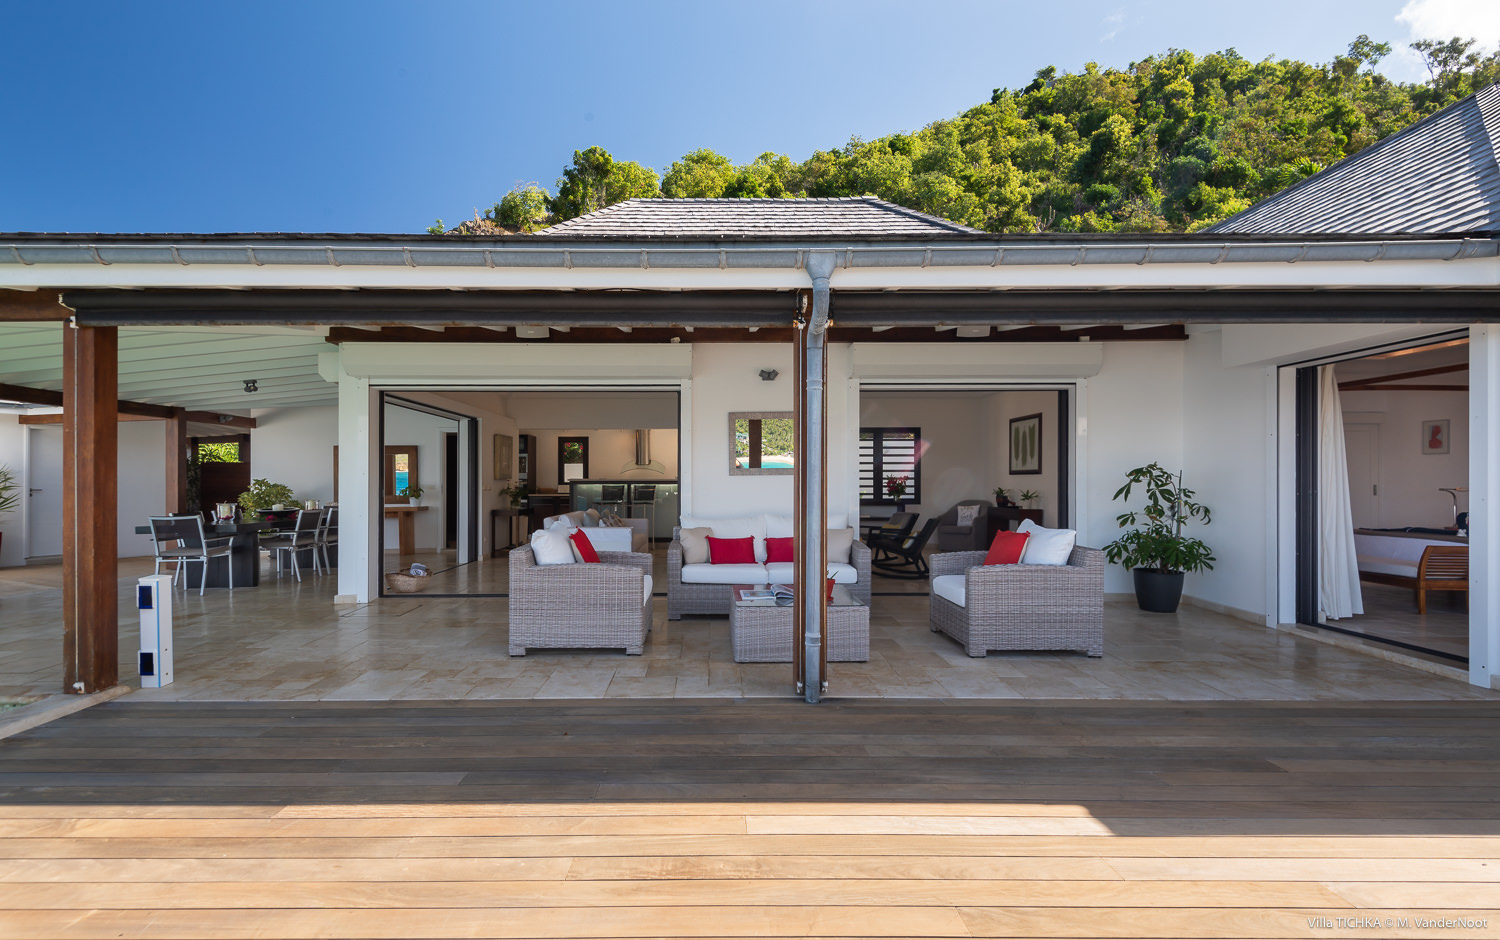 Villa Tichka - Oceanfront Villa for Rent St Barth Ideal for Two Couples - Outside view